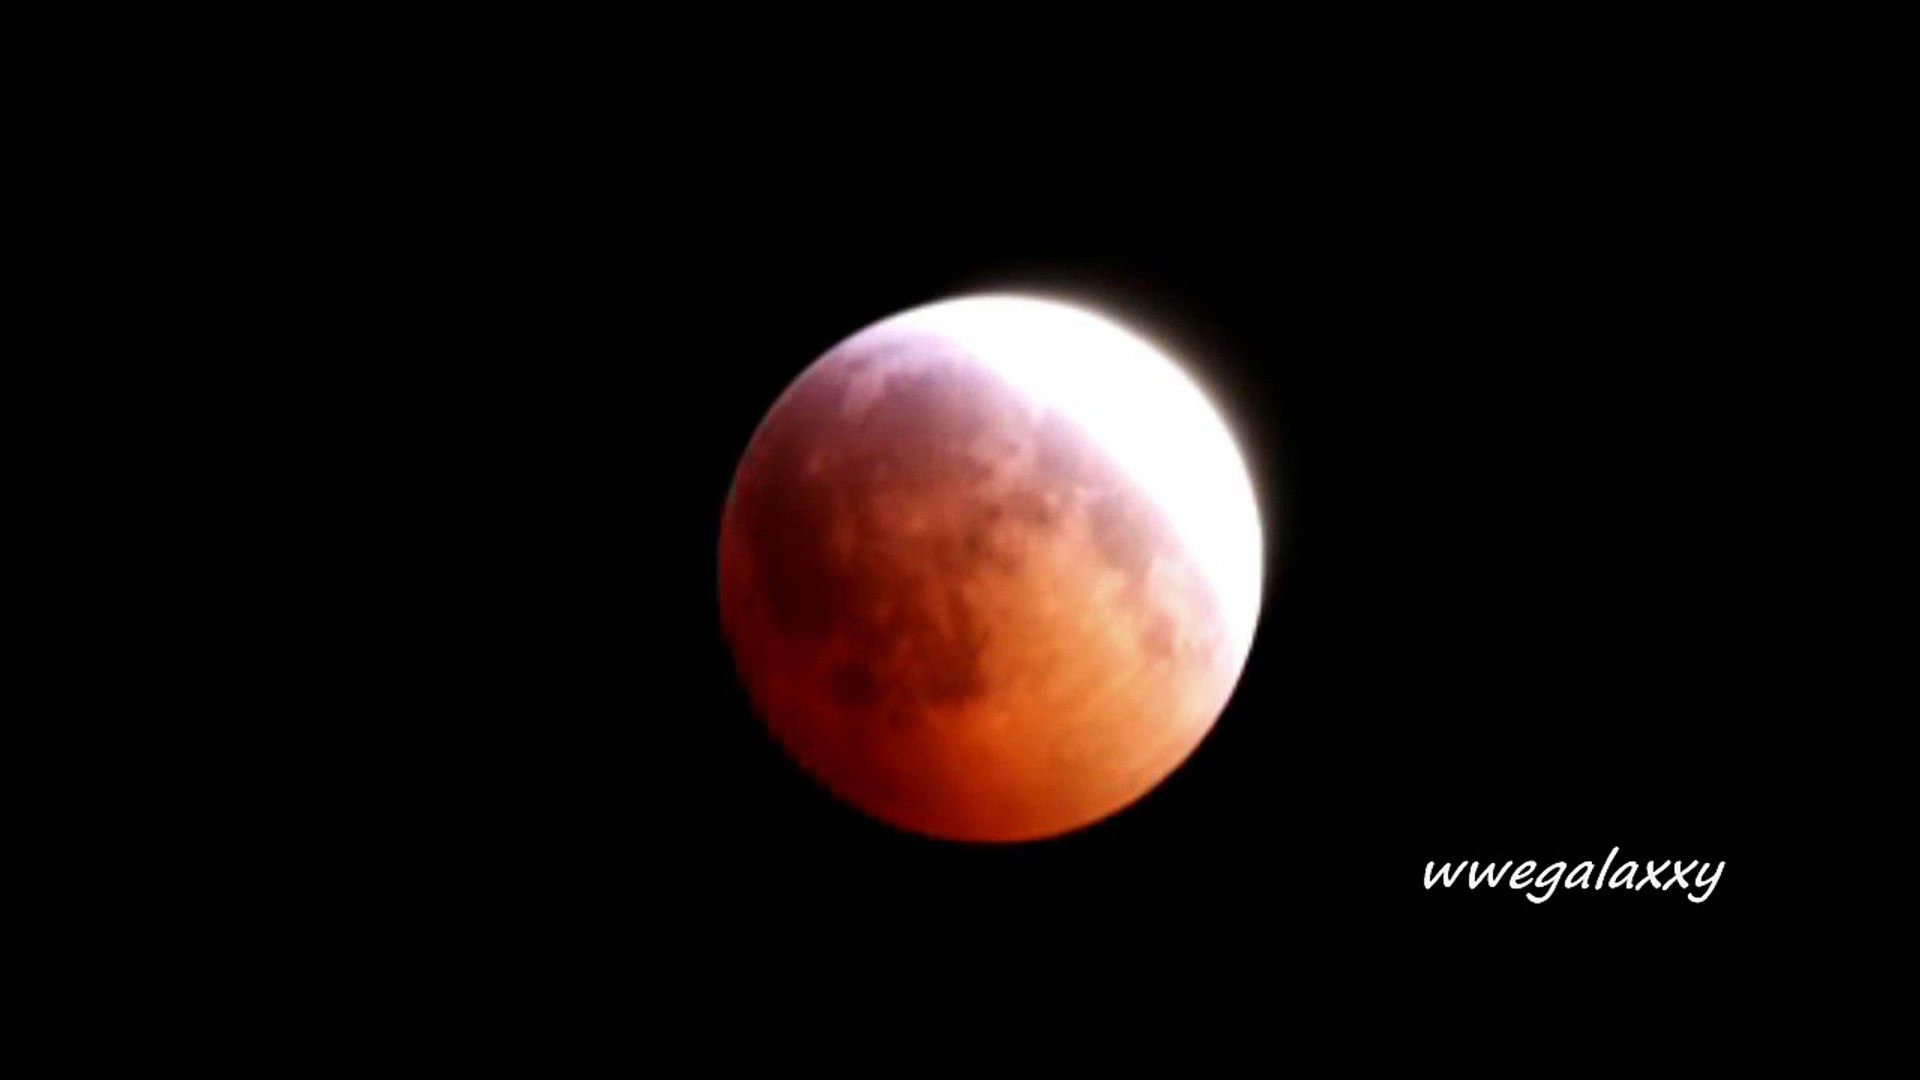 The total lunar eclipse on the night of Wednesday to Thursday, the first in 2011 and the longest for